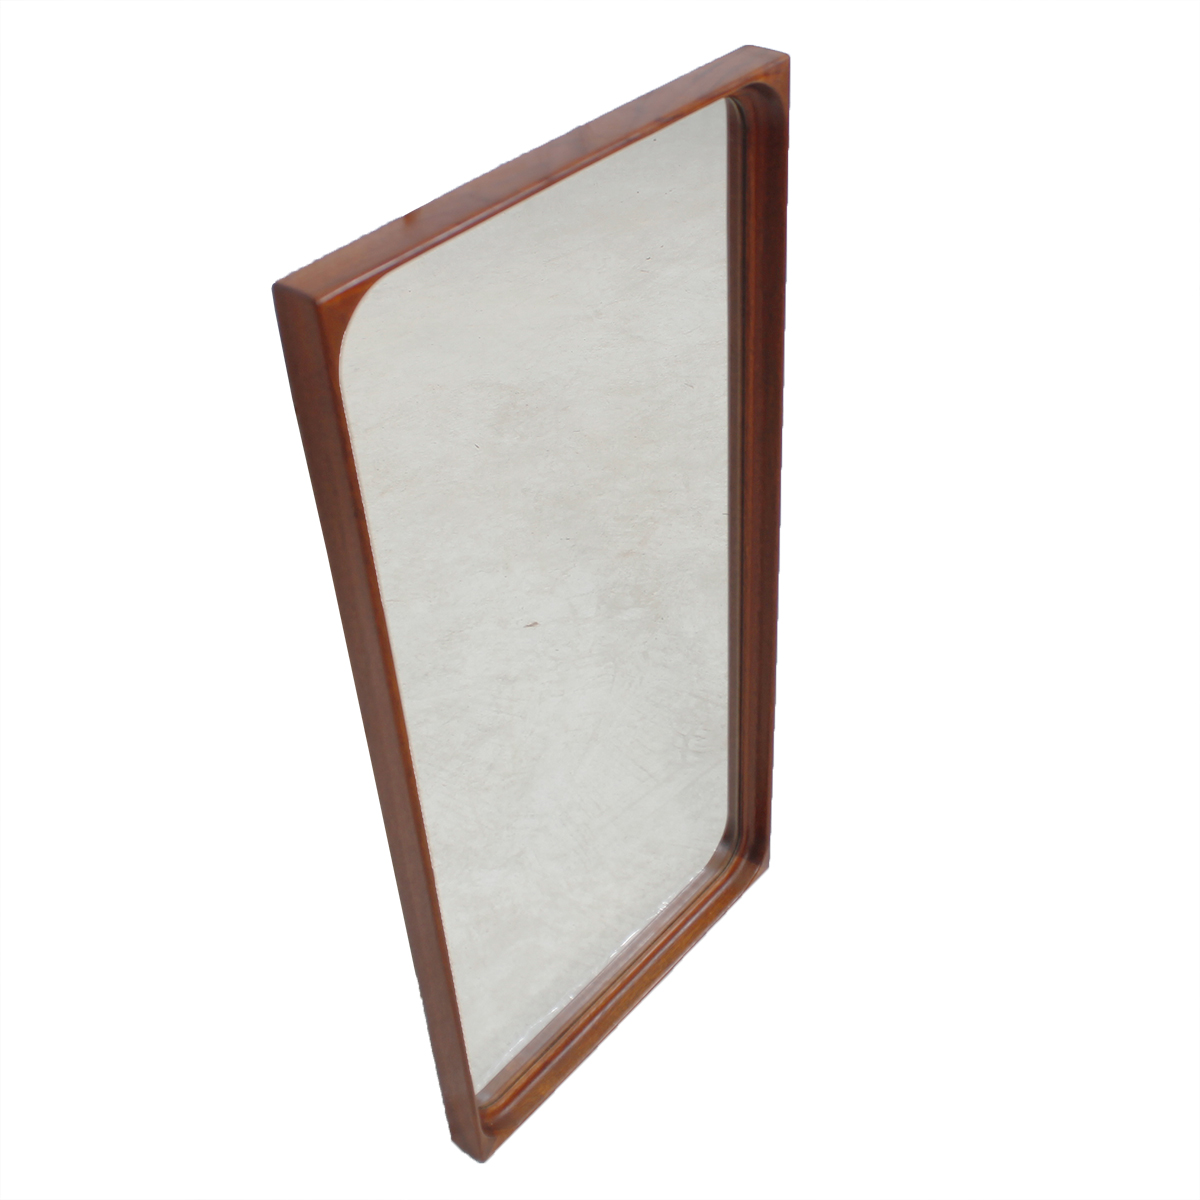 Danish Modern Teak Compact Mirror with Curved Edges